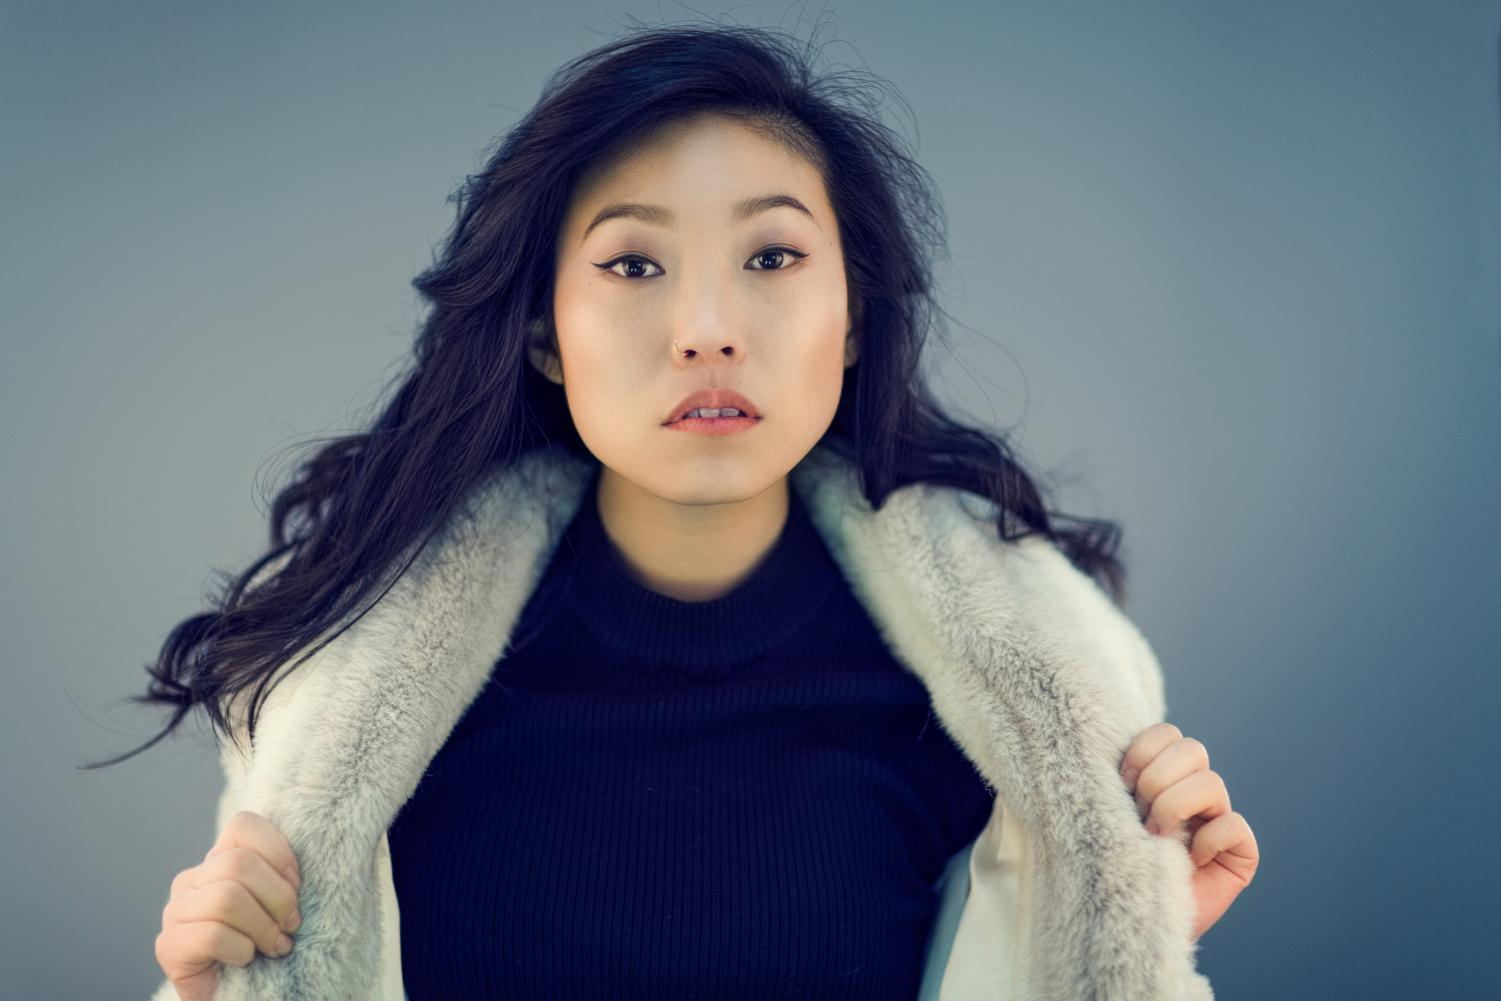 """Awkwafina was the lead actress in the movie """"The Farewell,"""" and she is the first person of Asian descent to win a Golden Globe in that category."""